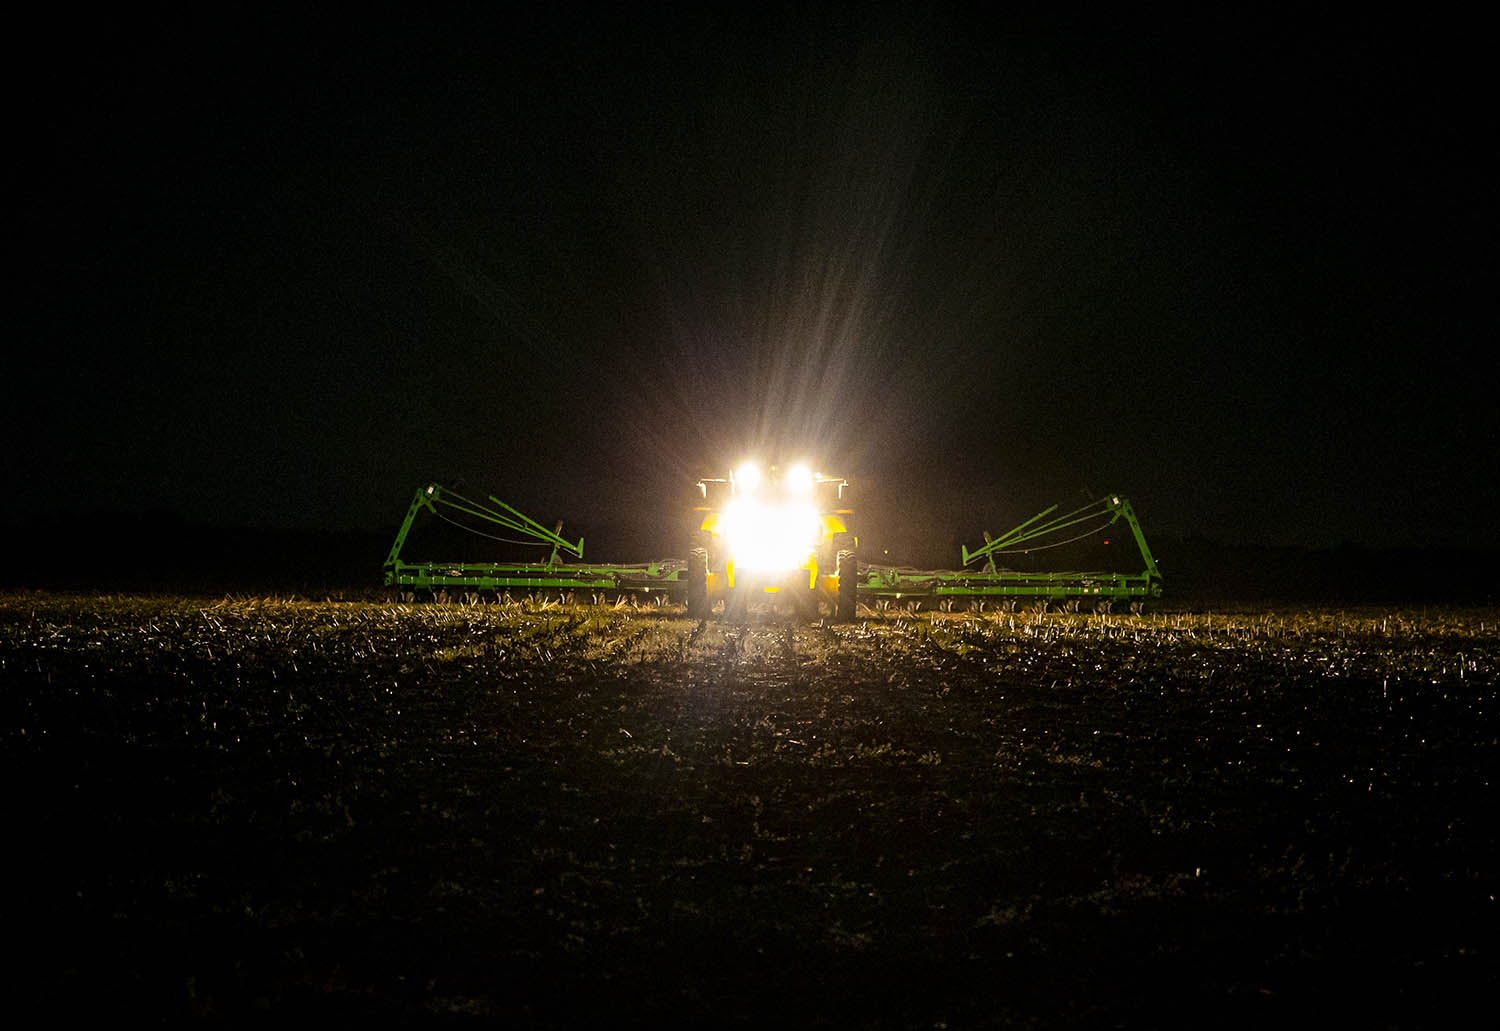 "Lee Curby pilots a planter with Steve Copp late into the night as they push to get as much done as the weather allows in a field along Alpha Road, Friday, May 17, 2019, in south of Chatham, Ill. ""We're not out of the woods, but every day that we get is a bit better,"" said Curby of the break in wet weather that has allowed him to get in the fields to work on getting his crop planted. The exceptionally wet spring has led to only 11% of Illinois' corn crop to be planted as of May 12th compared to 88% at the same time in 2018. [Justin L. Fowler/The State Journal-Register]"